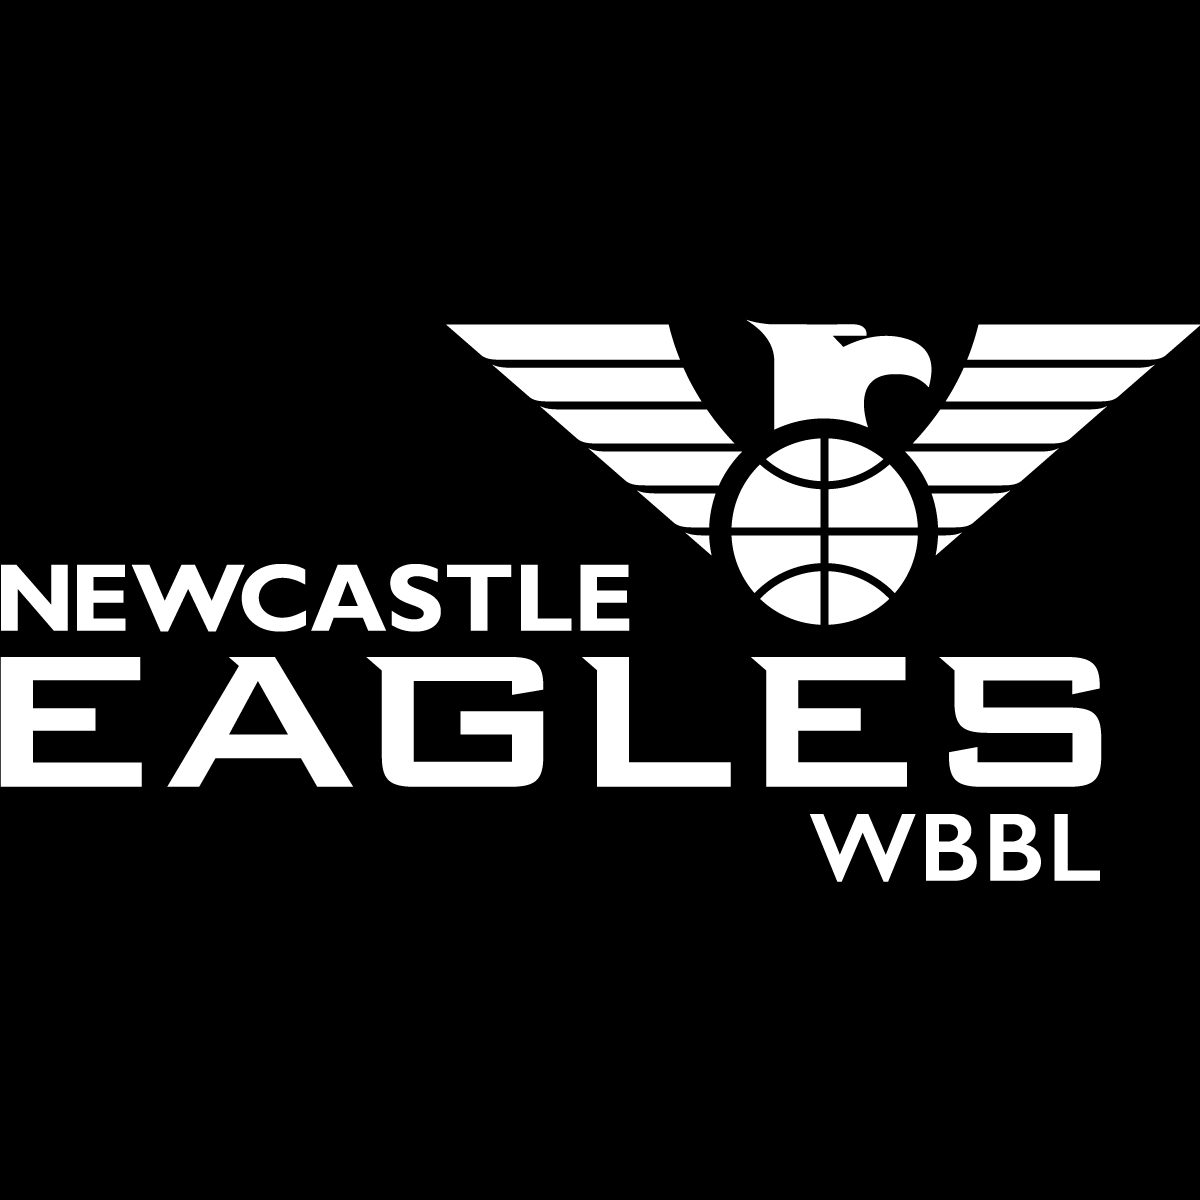 Newcastle Eagles WBBL